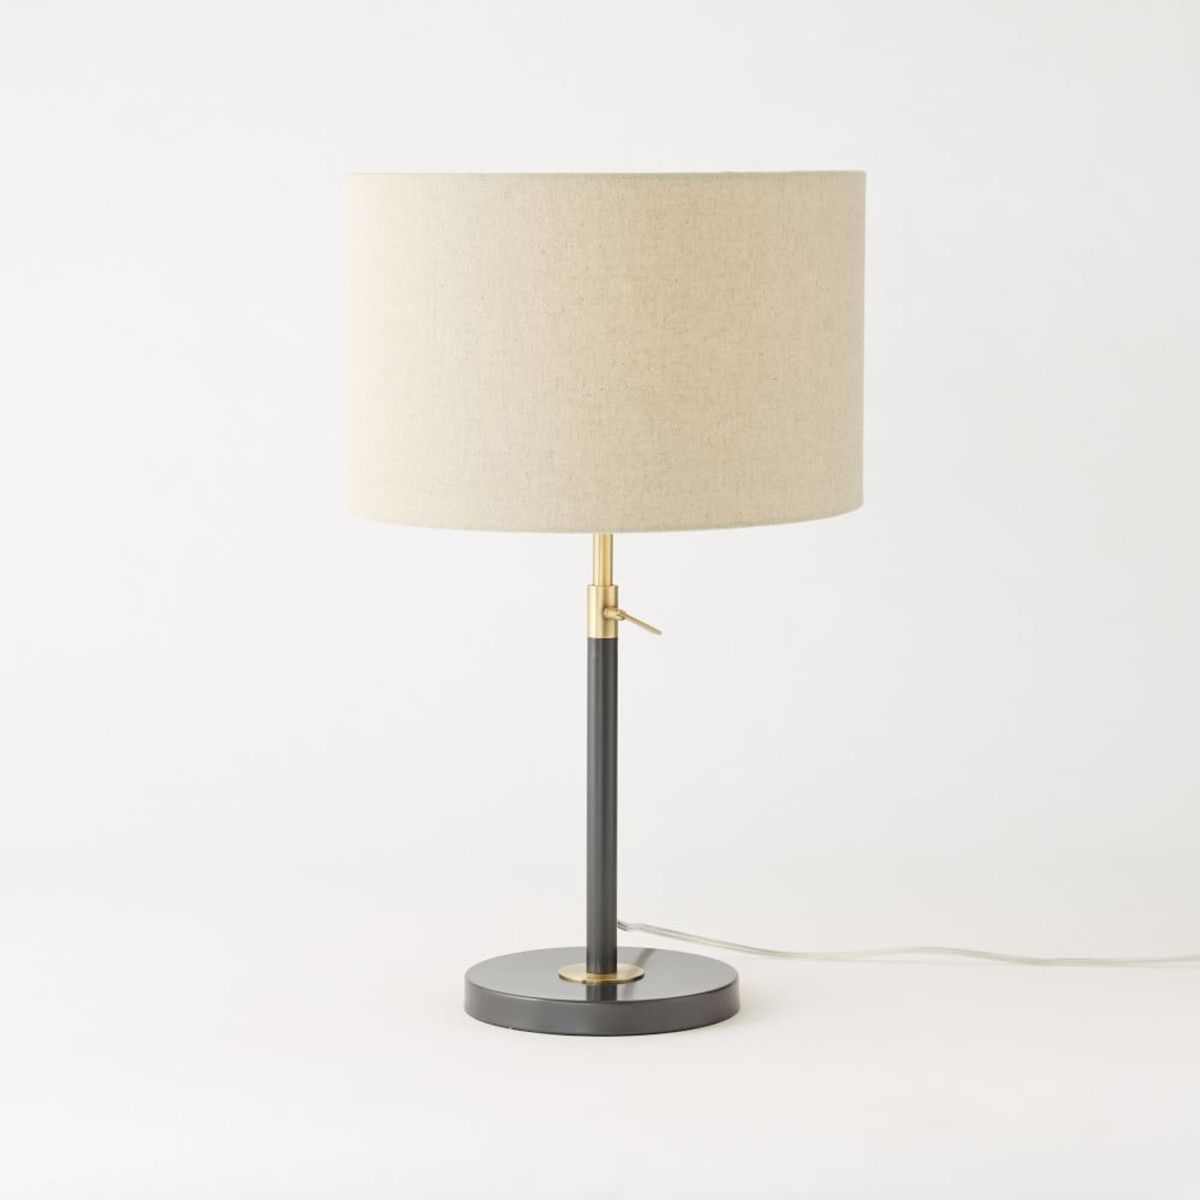 Lamp for lounge or bedroom ruffy pinterest bedrooms living lamp for lounge or bedroom aloadofball Choice Image